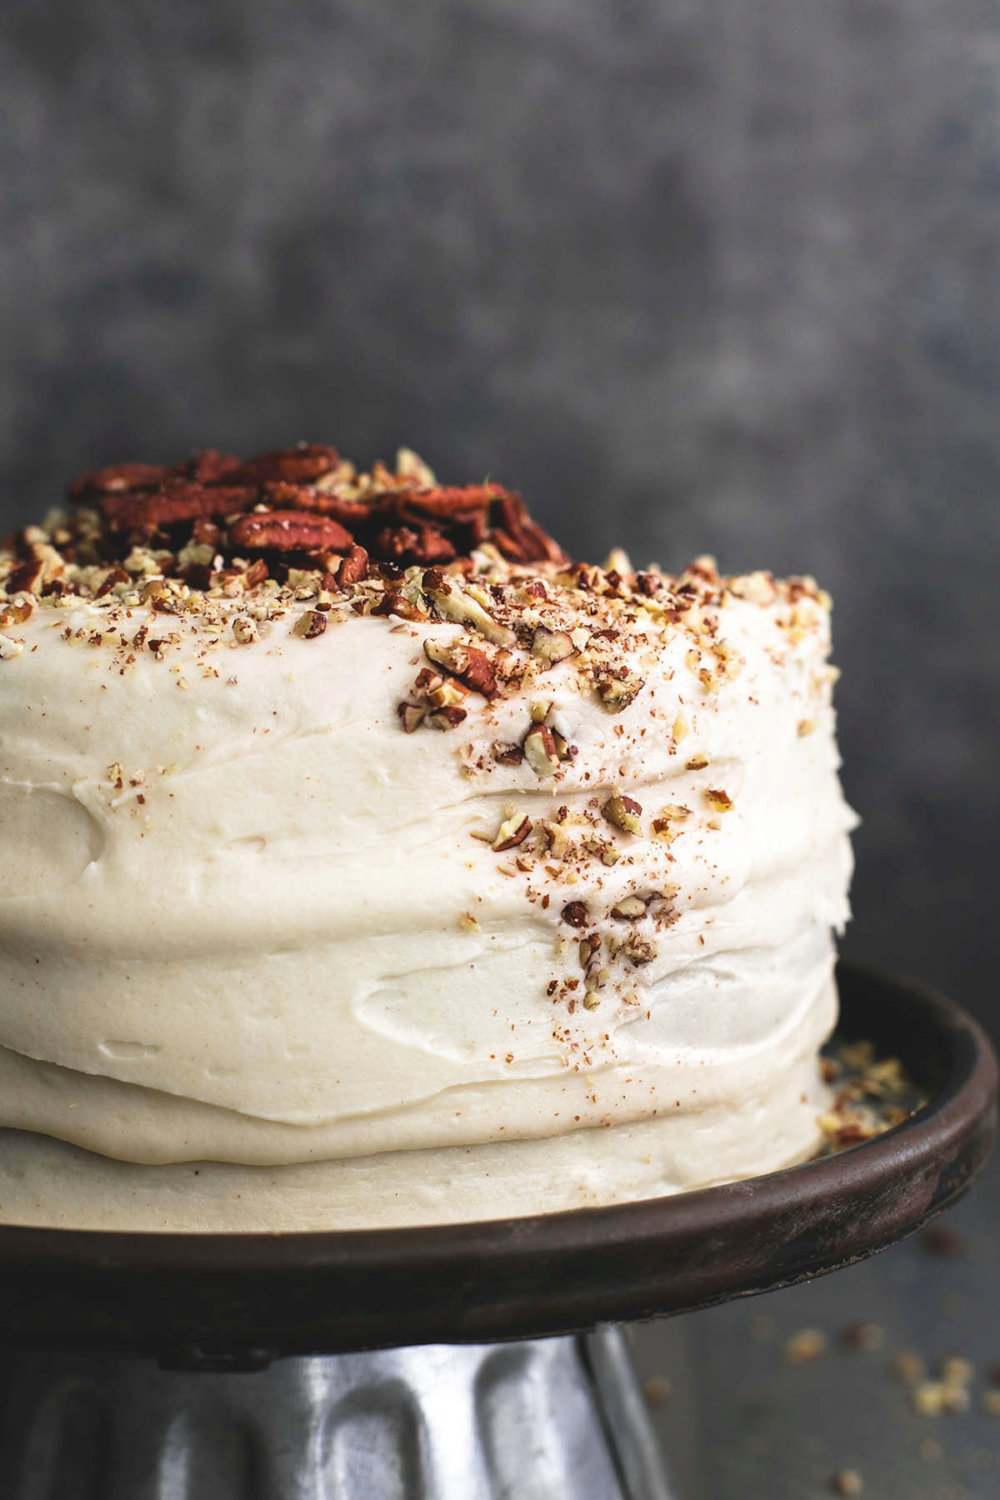 World's Best Carrot Cake with Cream Cheese Frosting